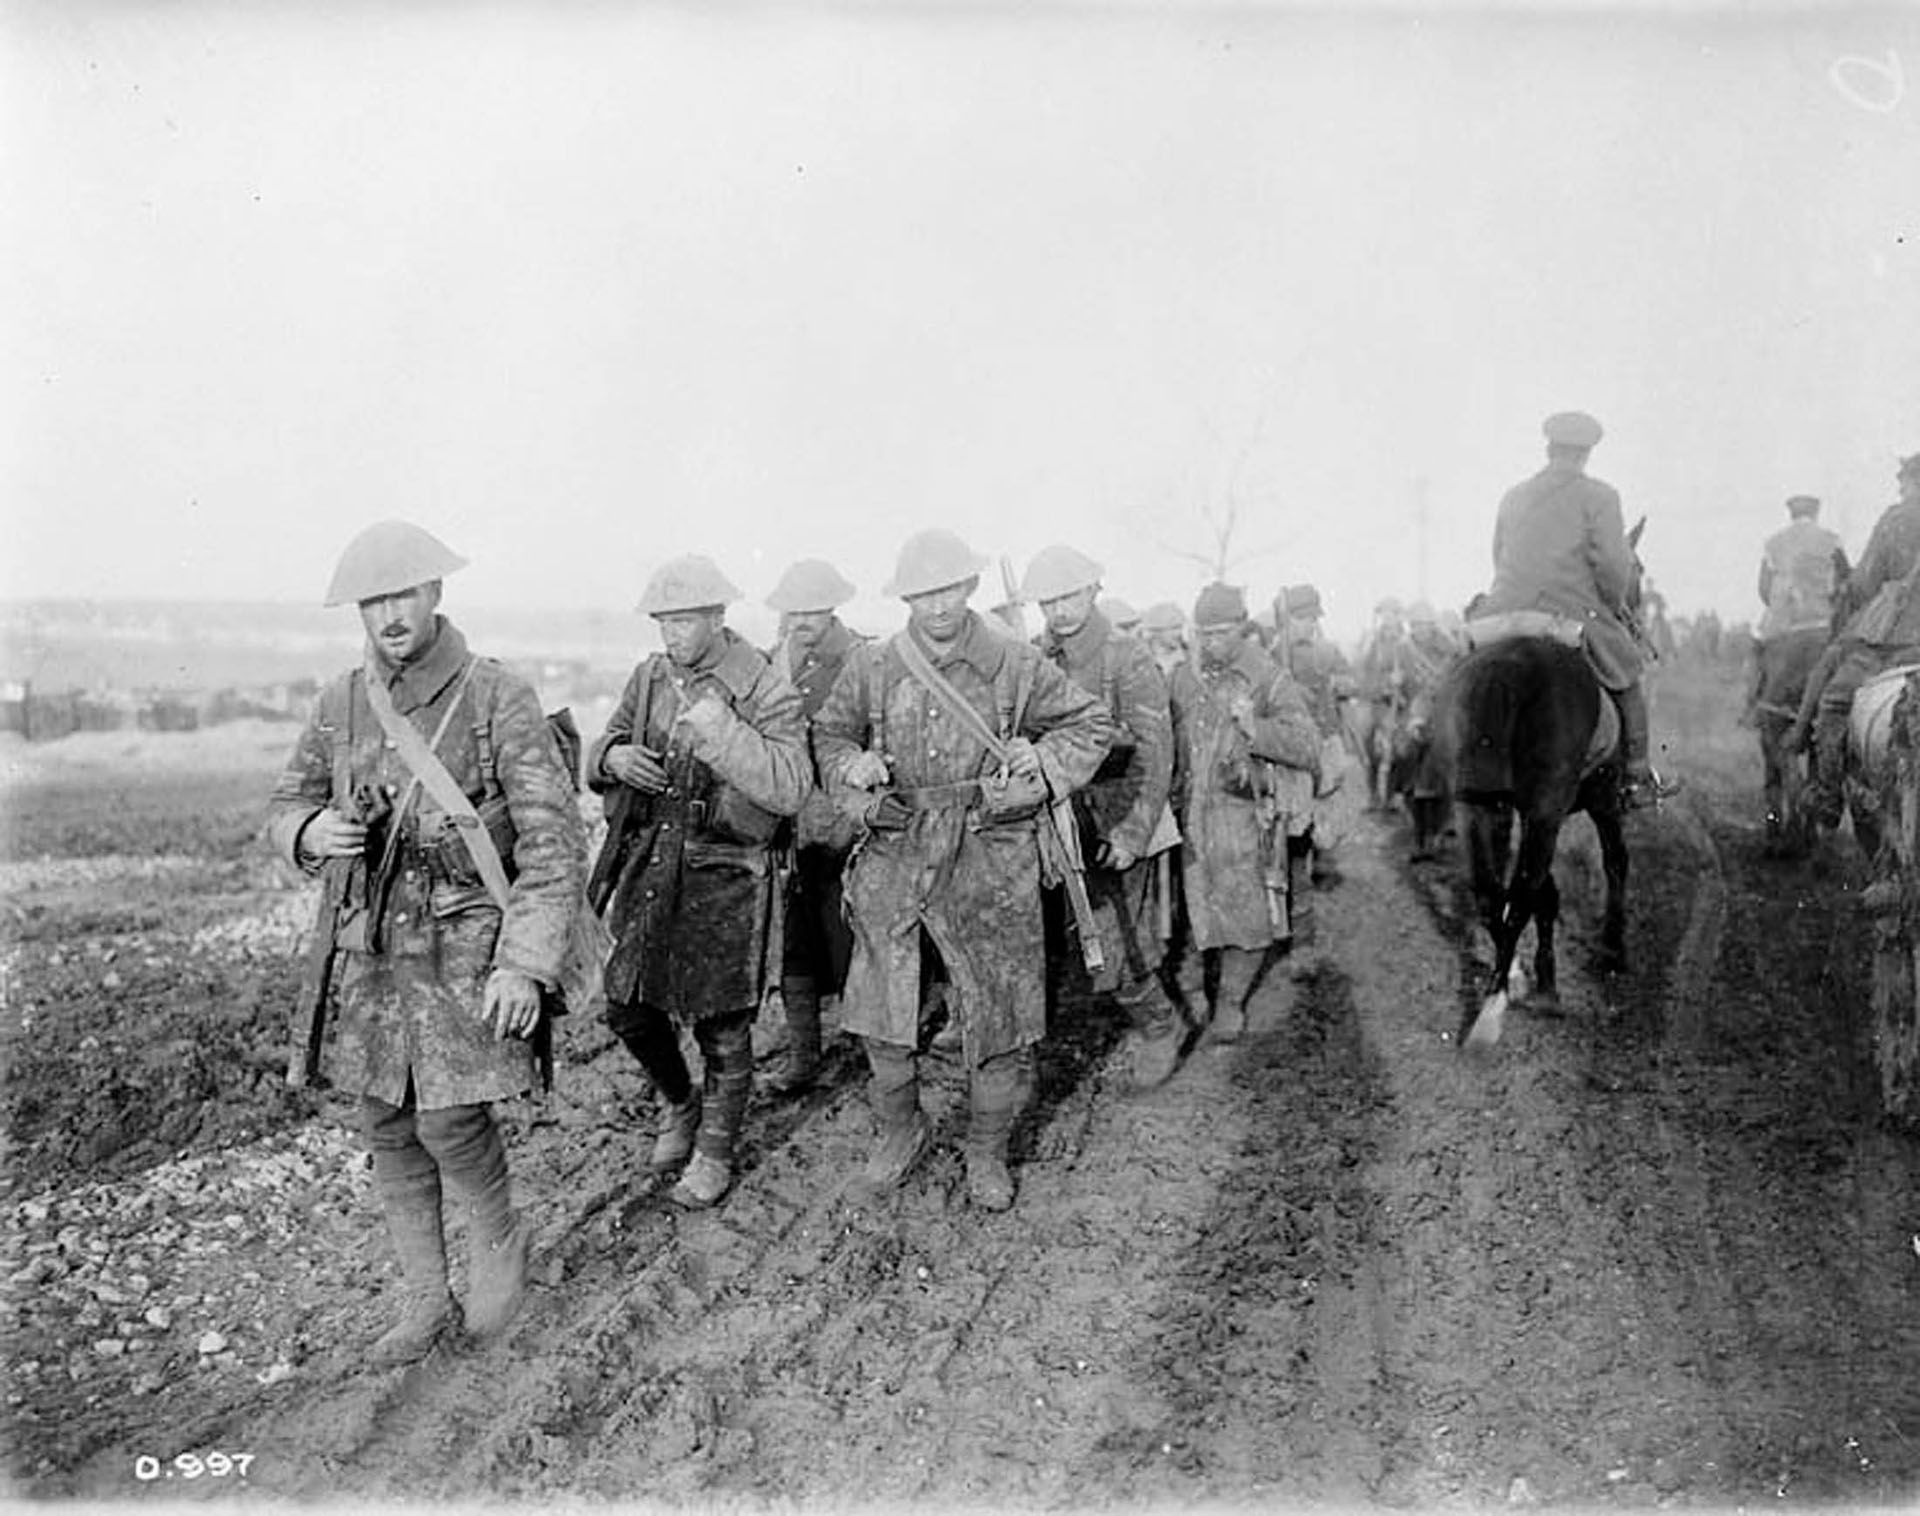 Canadians marching on the Somme. This dates from the autumn following Nicholls' injury but still gives a good impression of marching conditions during his service.